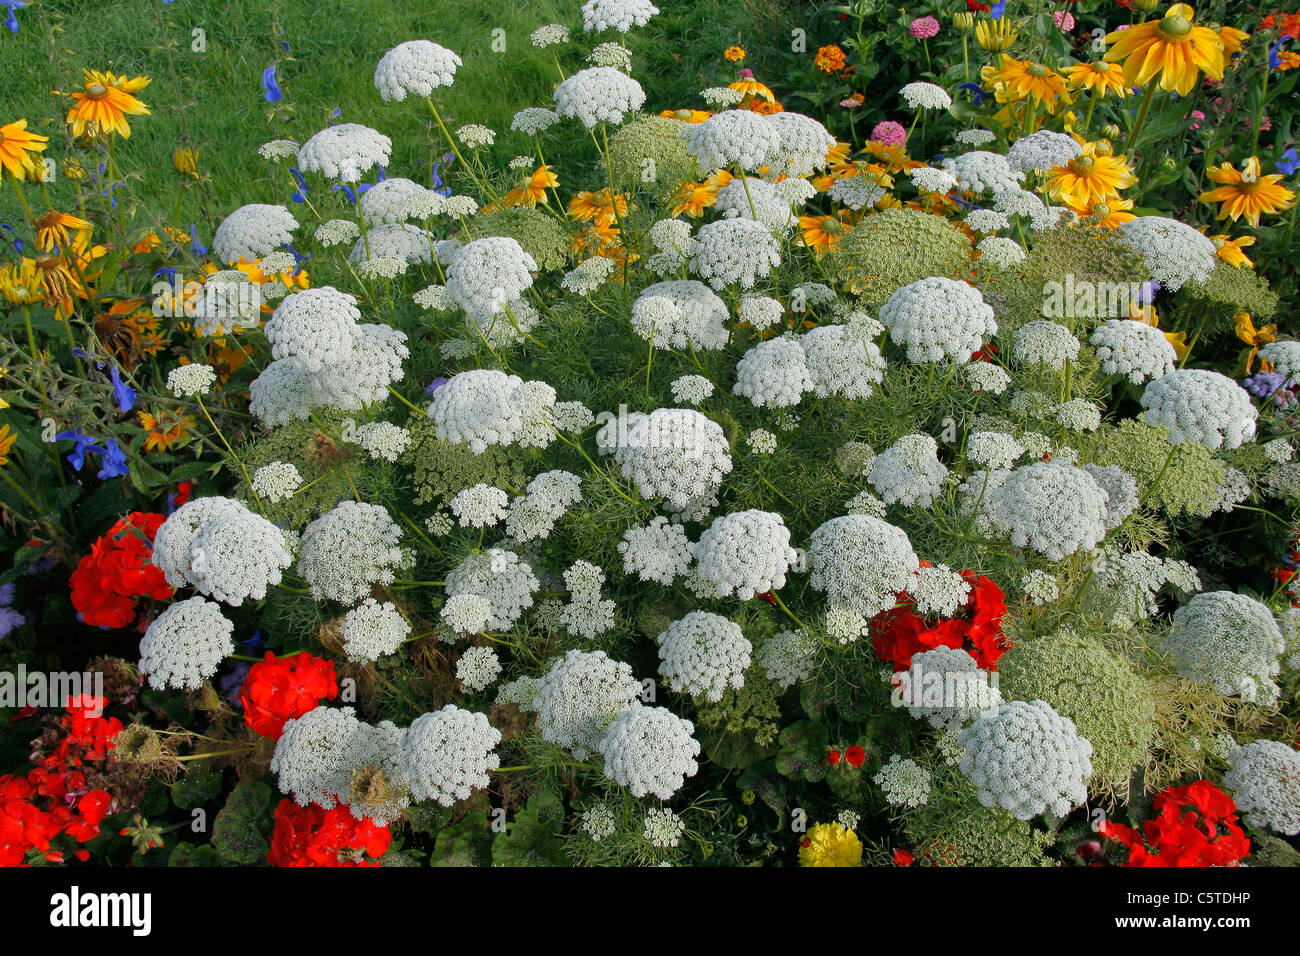 """Annual flower bed : Ammi """"Queen of Africa"""" (Ammi majus). Stock Photo"""